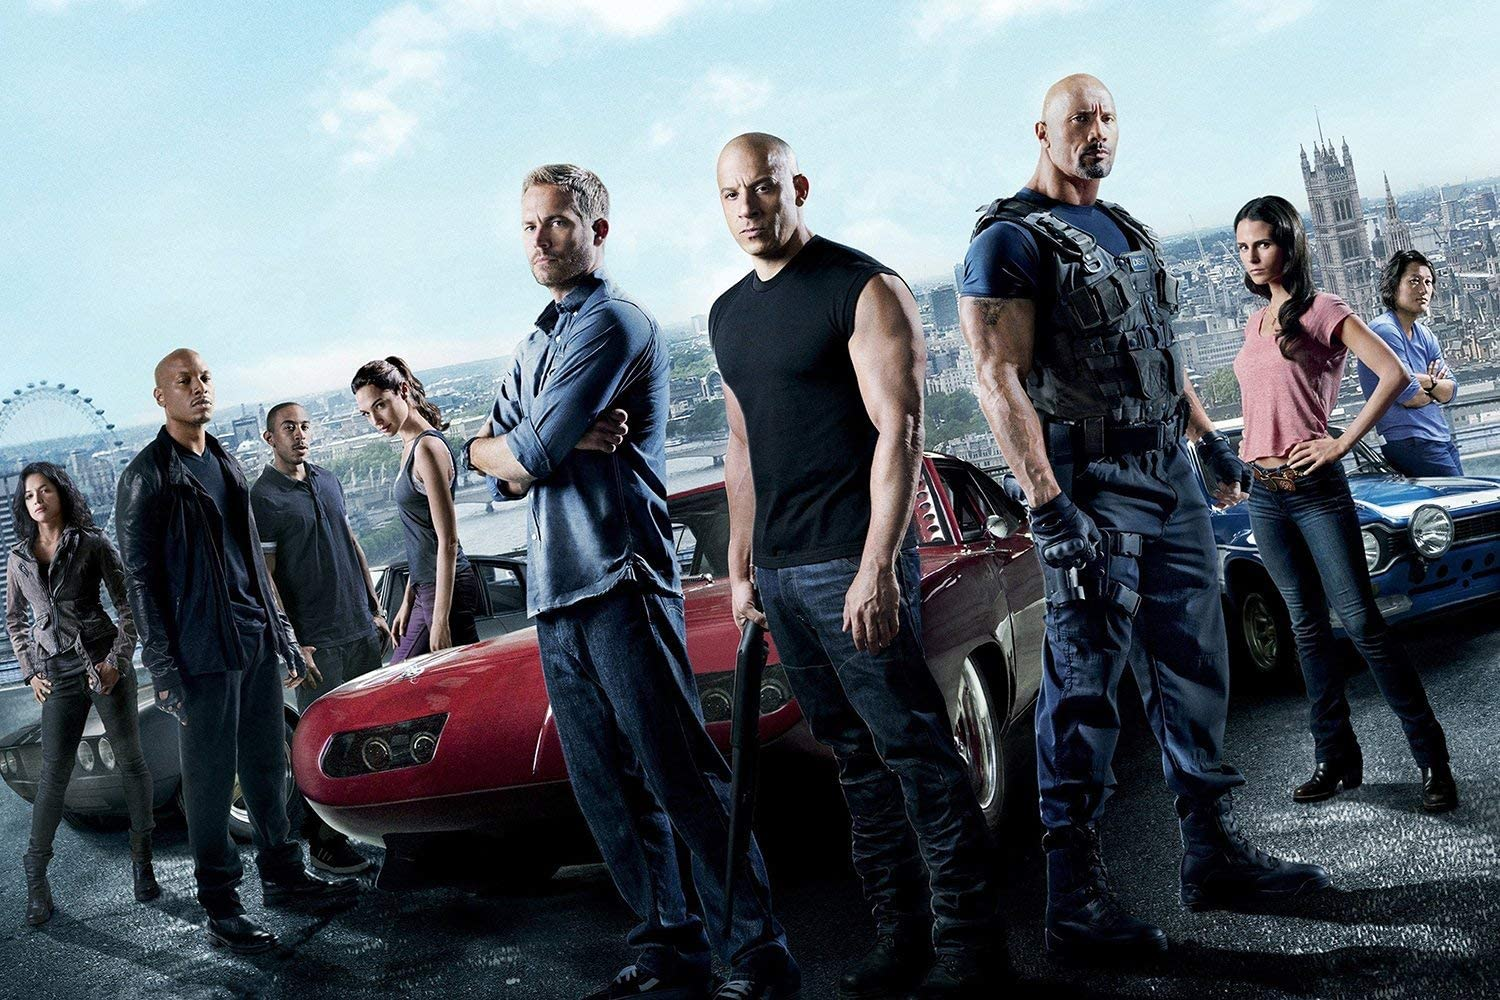 UpdateClassic Fast & Furious 6 (2013) Movie Poster Dwayne Johnson, Vin Diesel, Paul Walker, Michelle Rodriguez - Poster 11 x 17 inch Poster Print Frameless Art Gift 28 x 43 cm Matte Paper Surface